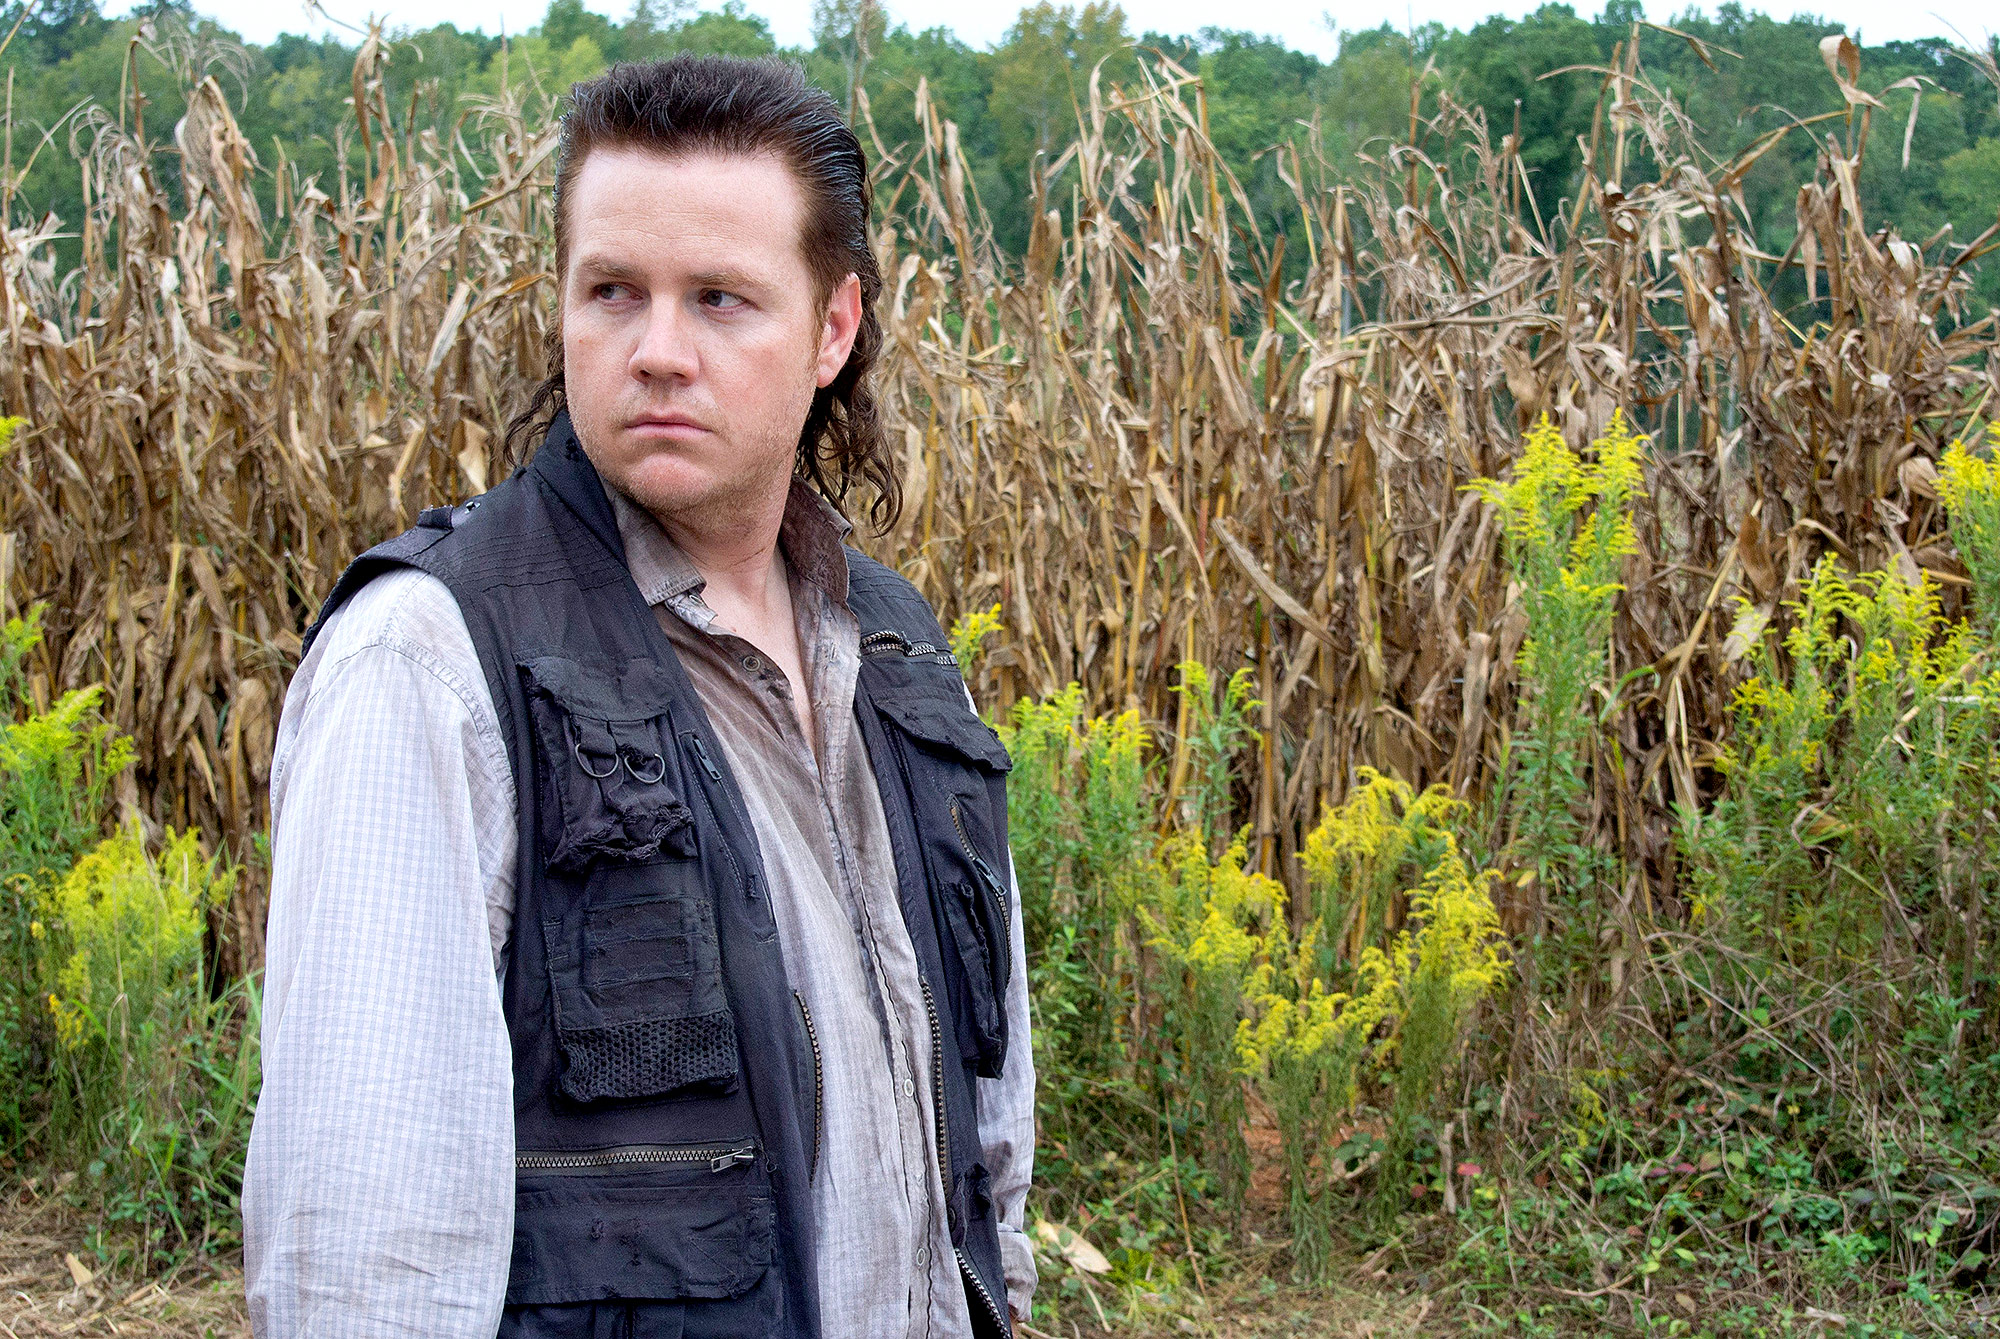 THE WALKING DEAD, Josh McDermitt in 'Claimed' (Season 4, Episode 11, aired February 23, 2014). ph: G